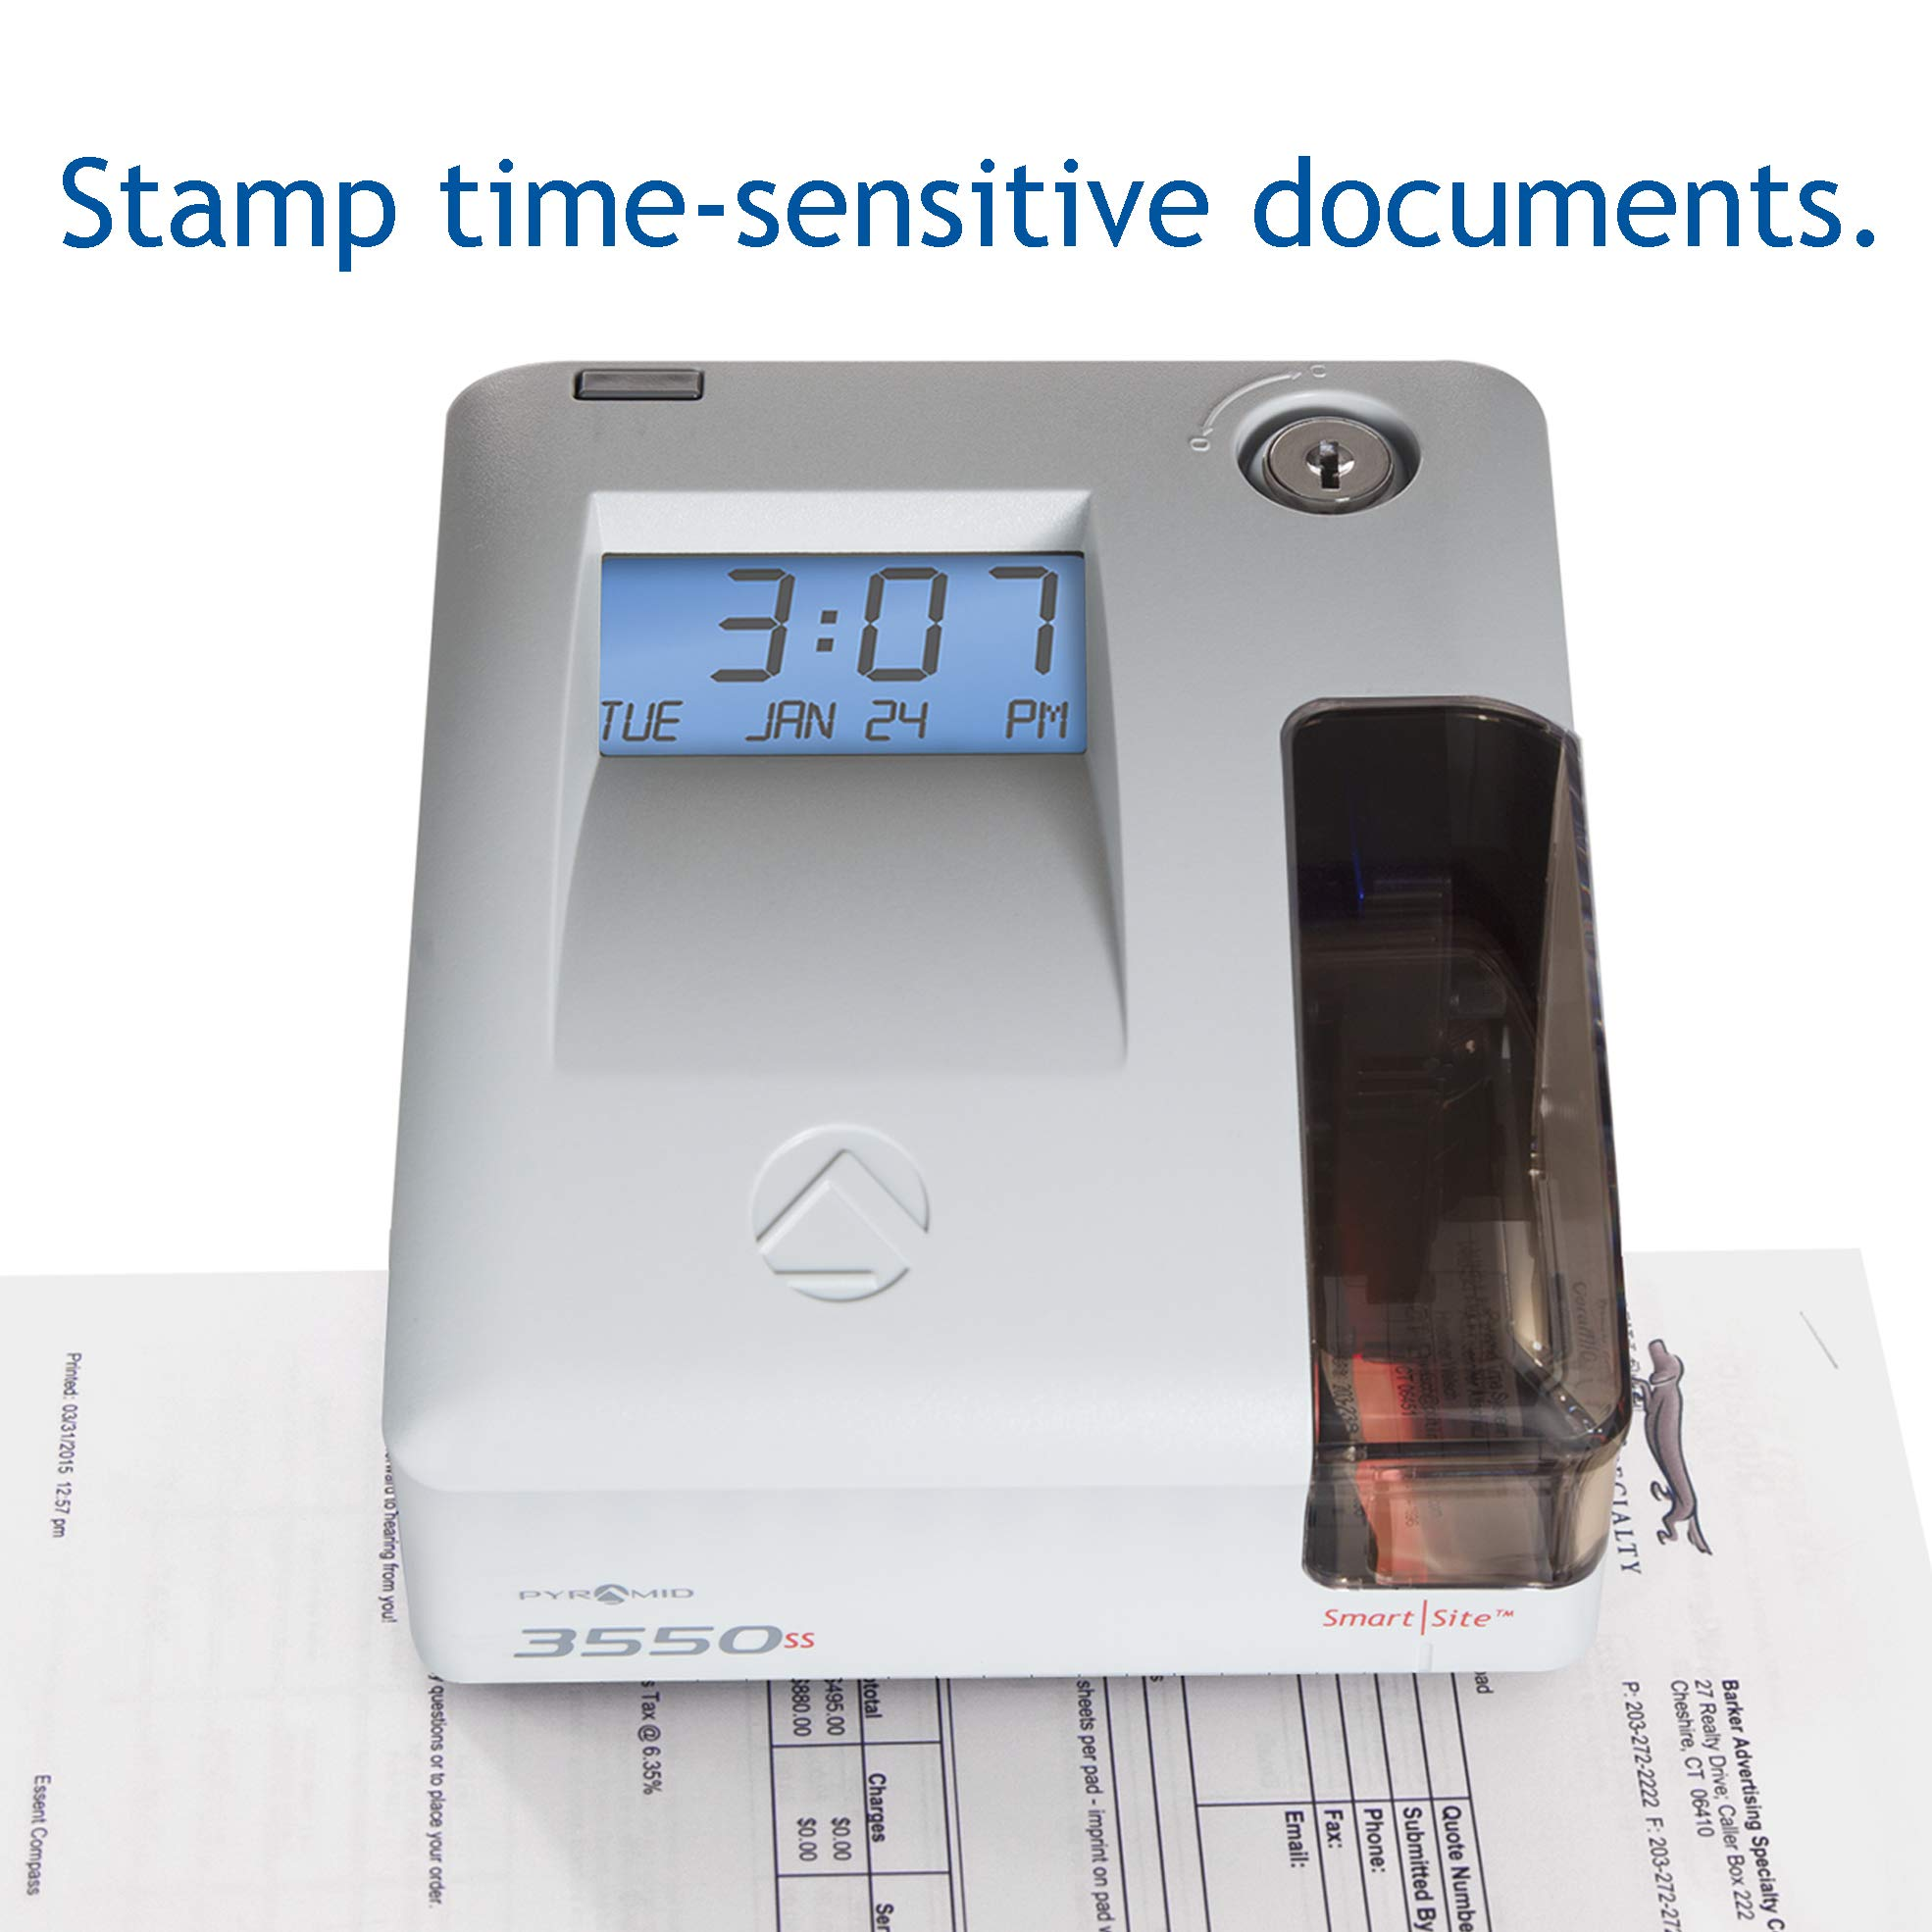 Pyramid 3550ss SmartSite Time Clock and Document Stamp - Made in USA by Pyramid Time Systems (Image #4)